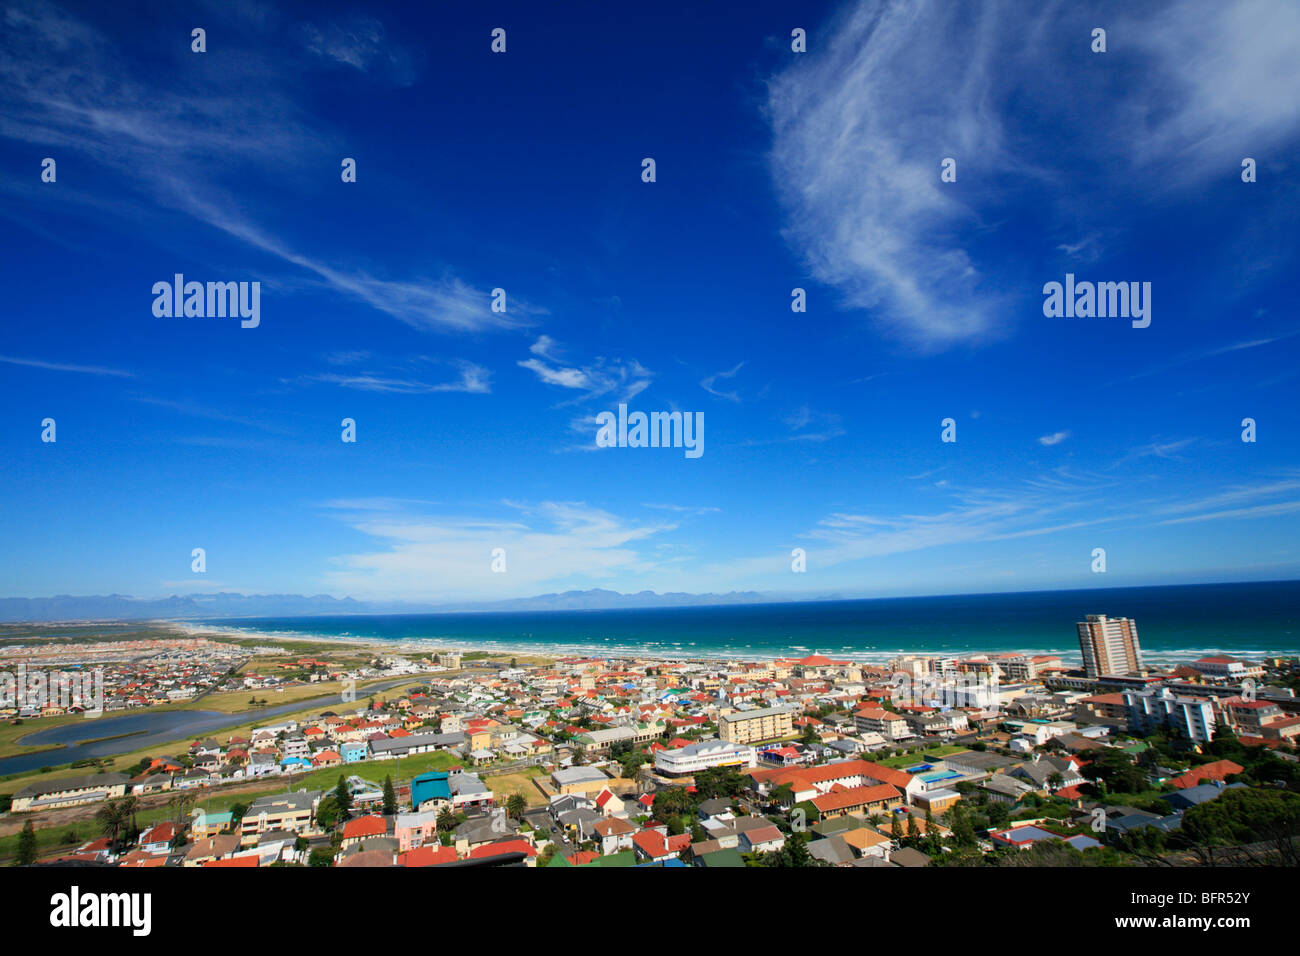 Wide angle view over houses of Kalk Bay - Stock Image